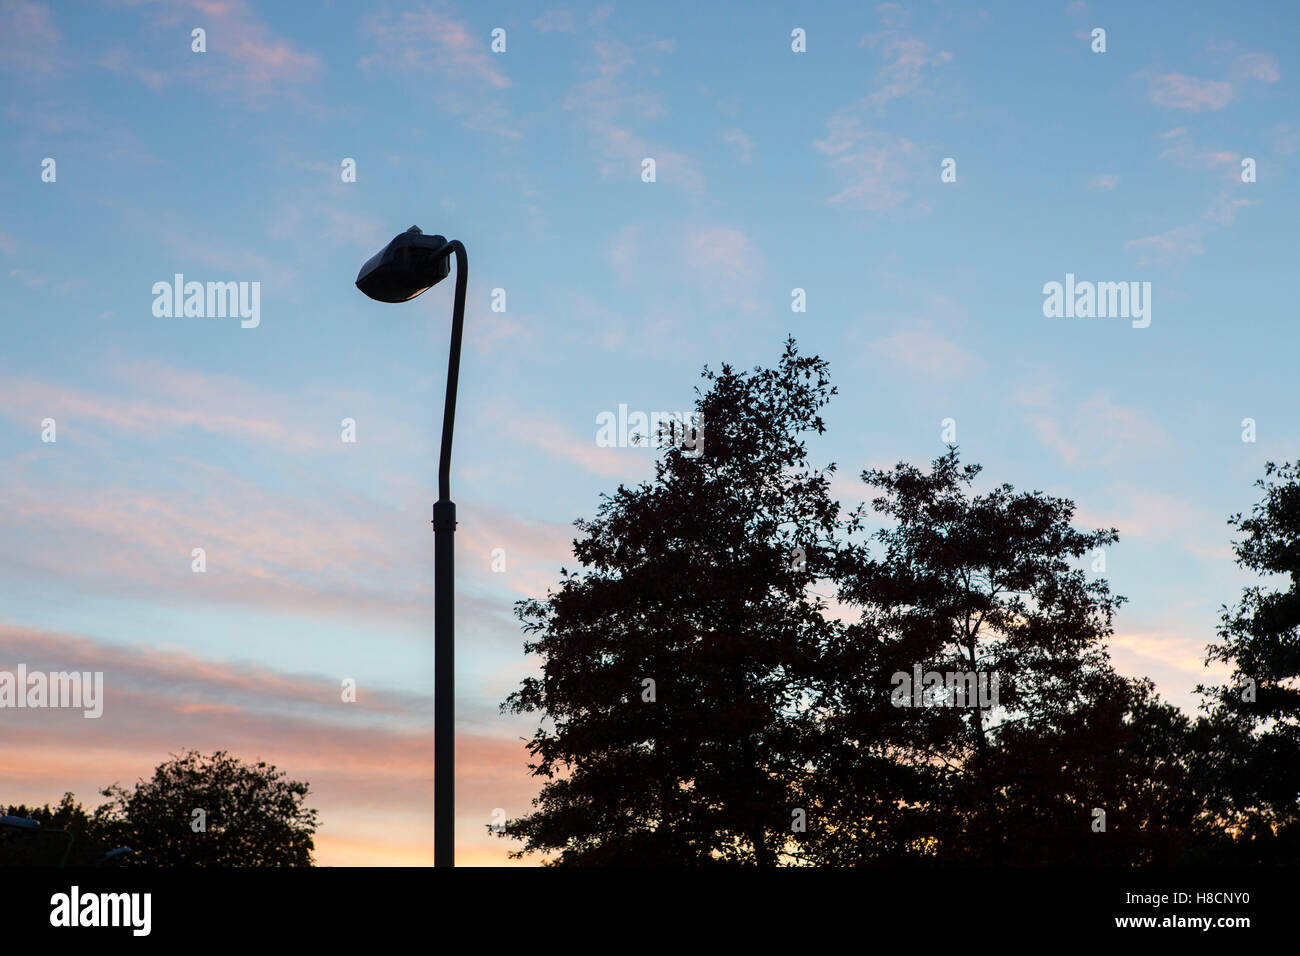 Unlit street lamps at twilight with trees and deep blue sky at a colourful sunset. - Stock Image